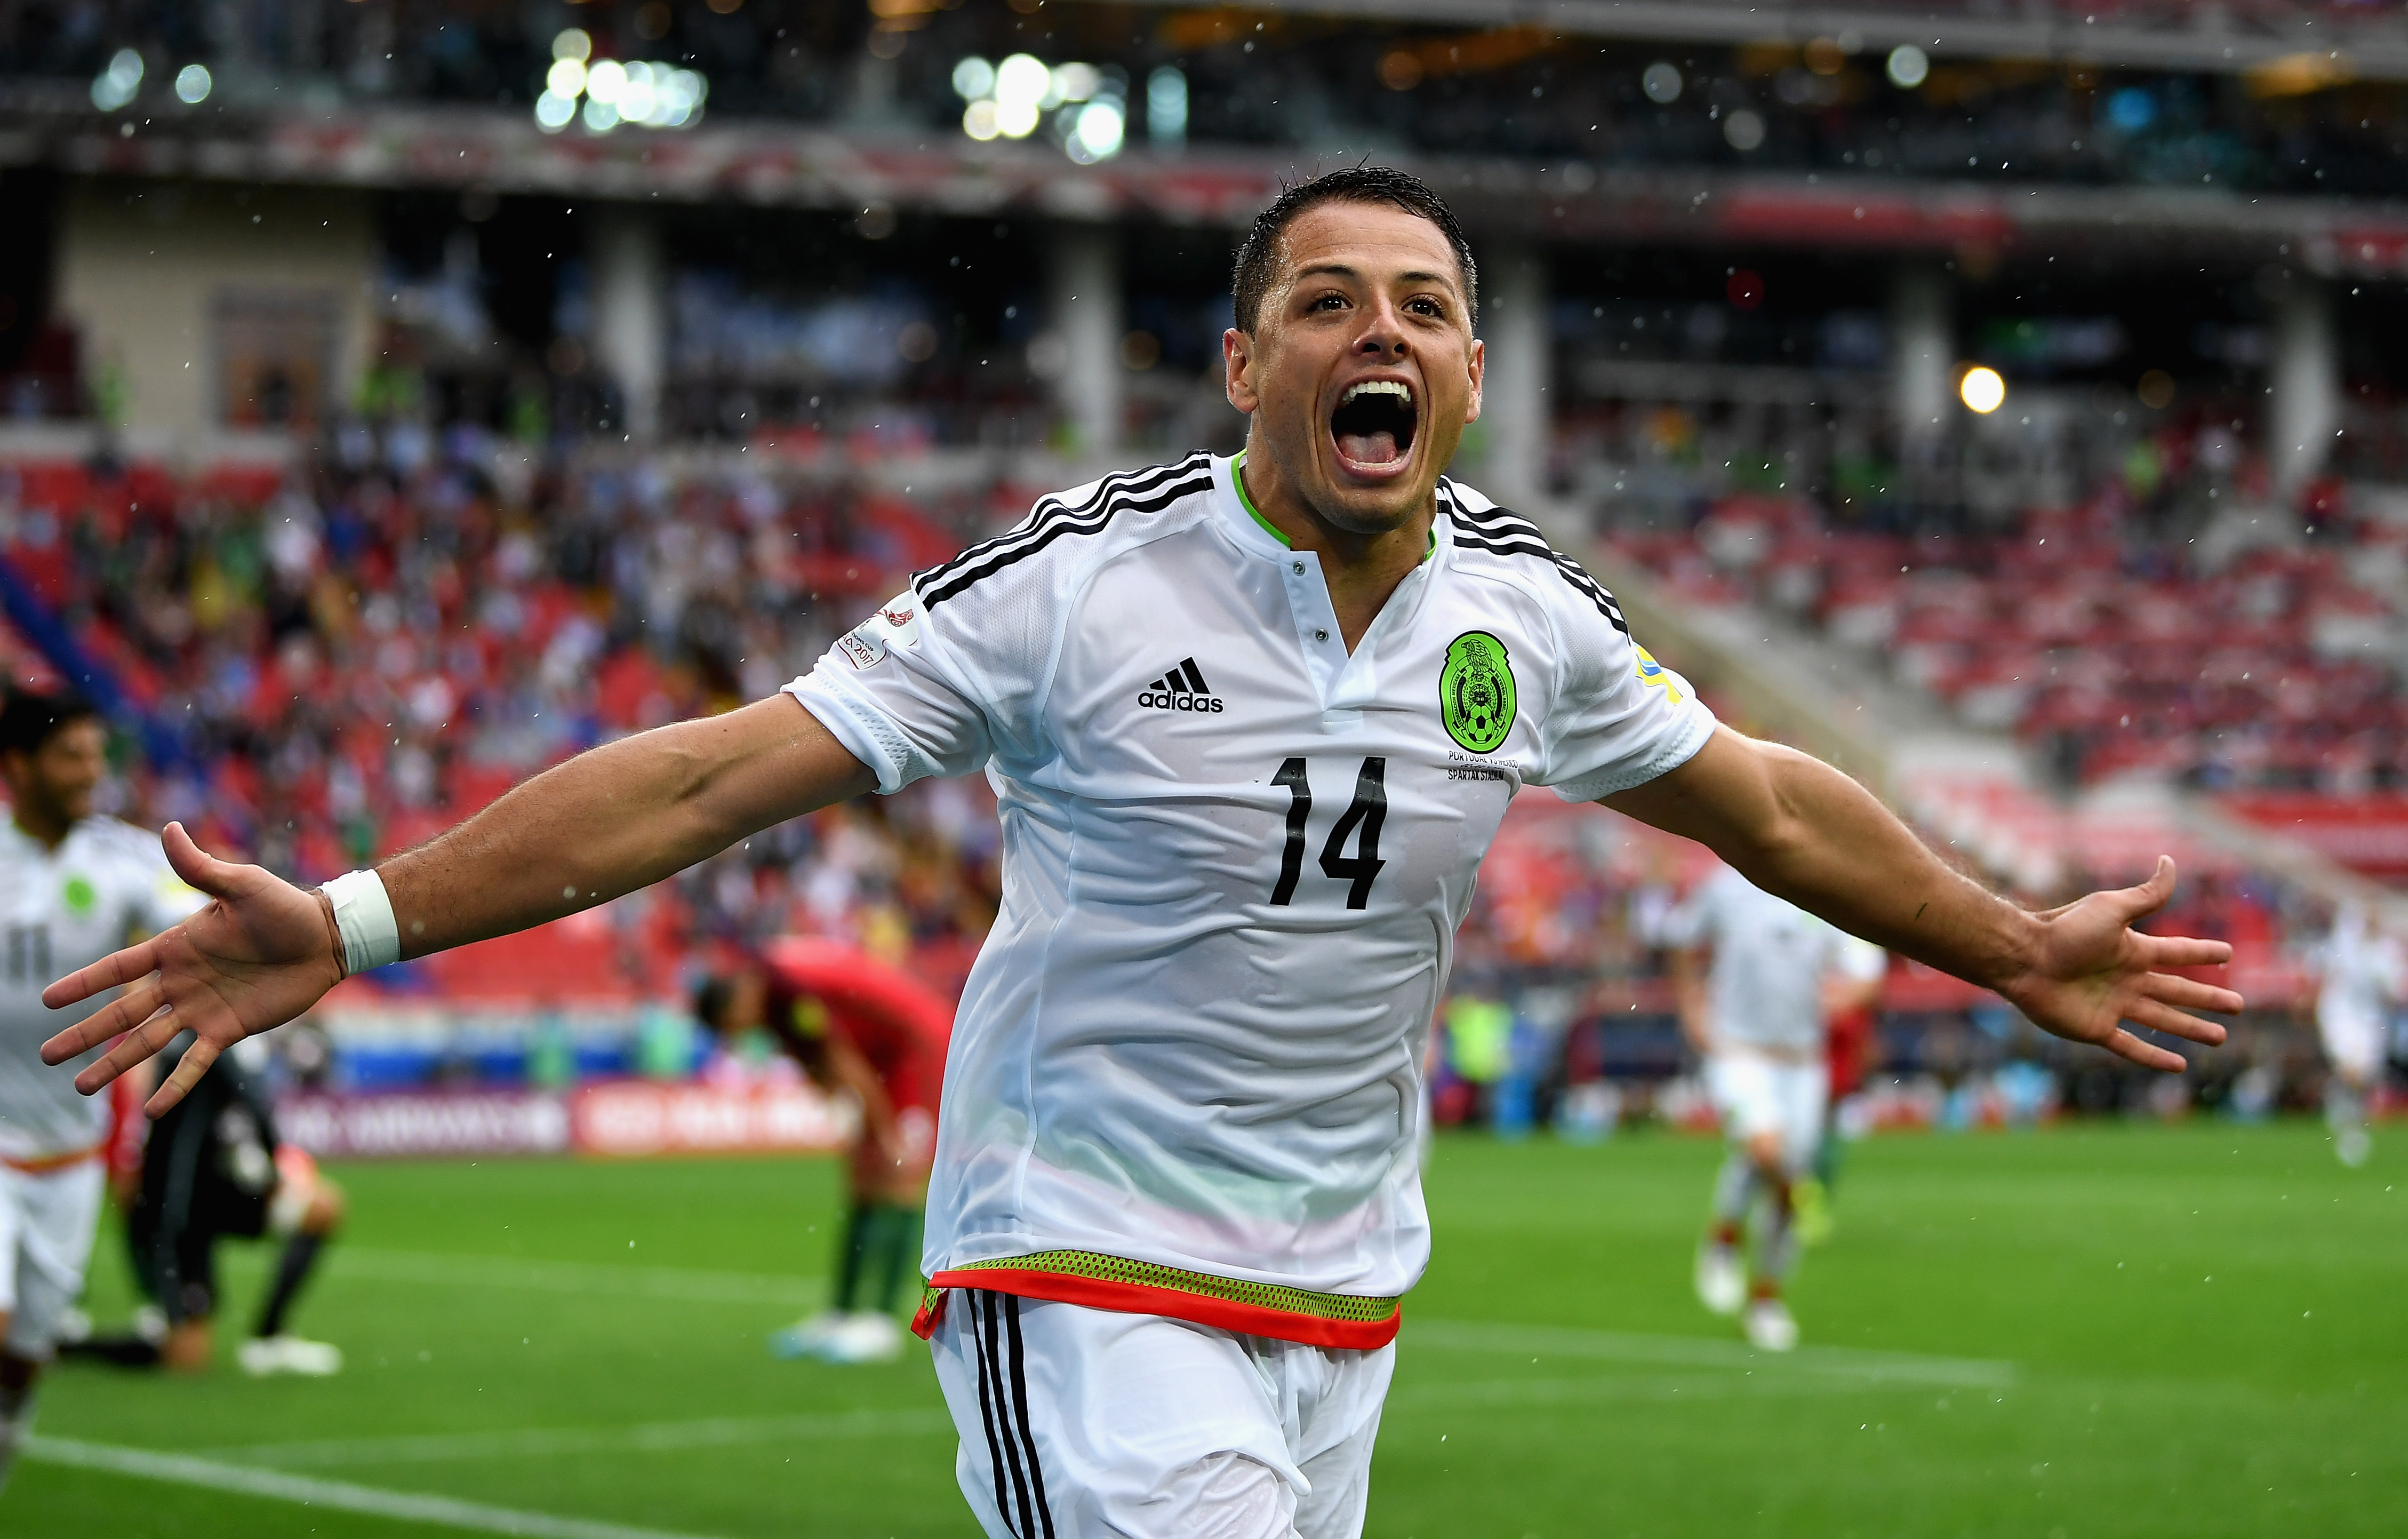 805593932-portugal-v-mexico-play-off-for-third-place-fifa-confederations-cup-russia-2017.jpg